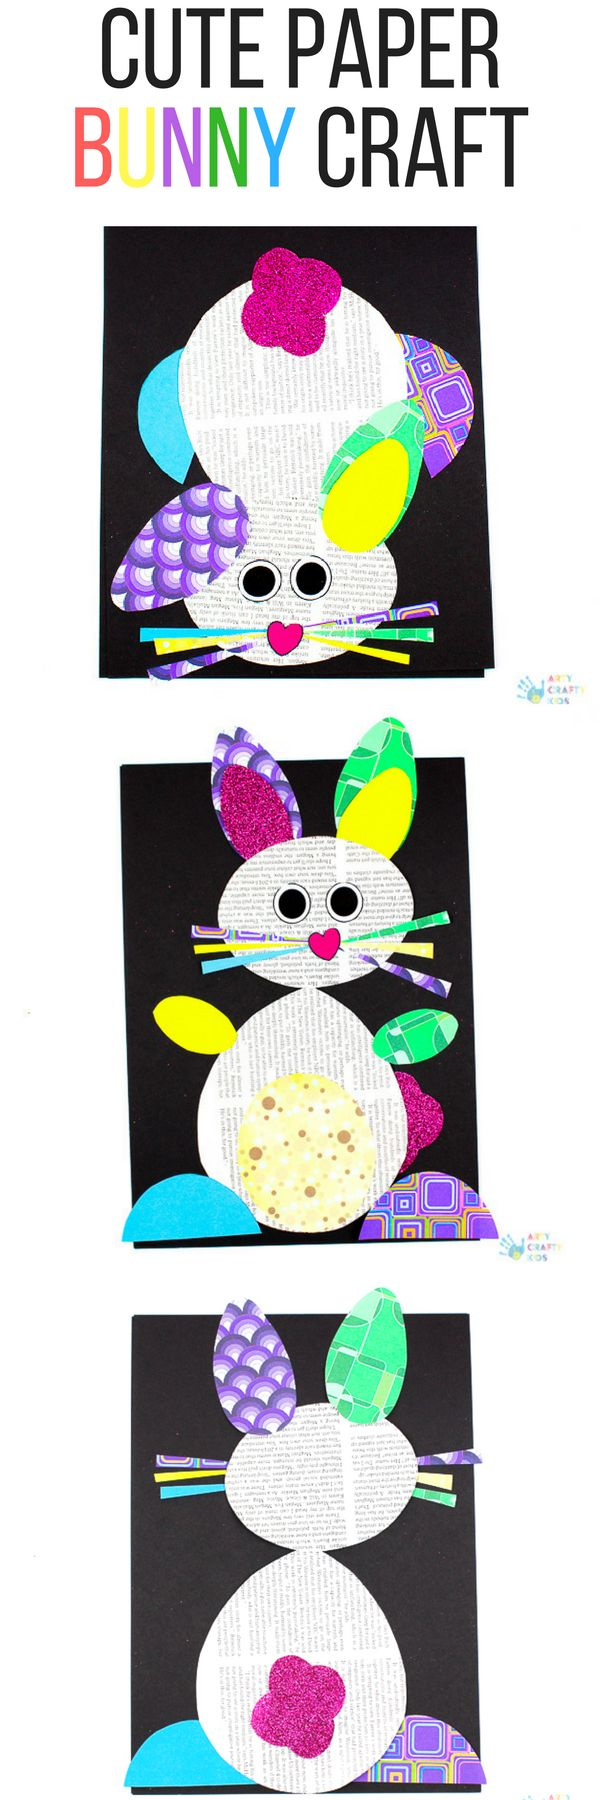 Arty Crafty Kids | Art Ideas for Kids | Paper Bunny Craft for Kids. A great craft idea for Spring and Easter